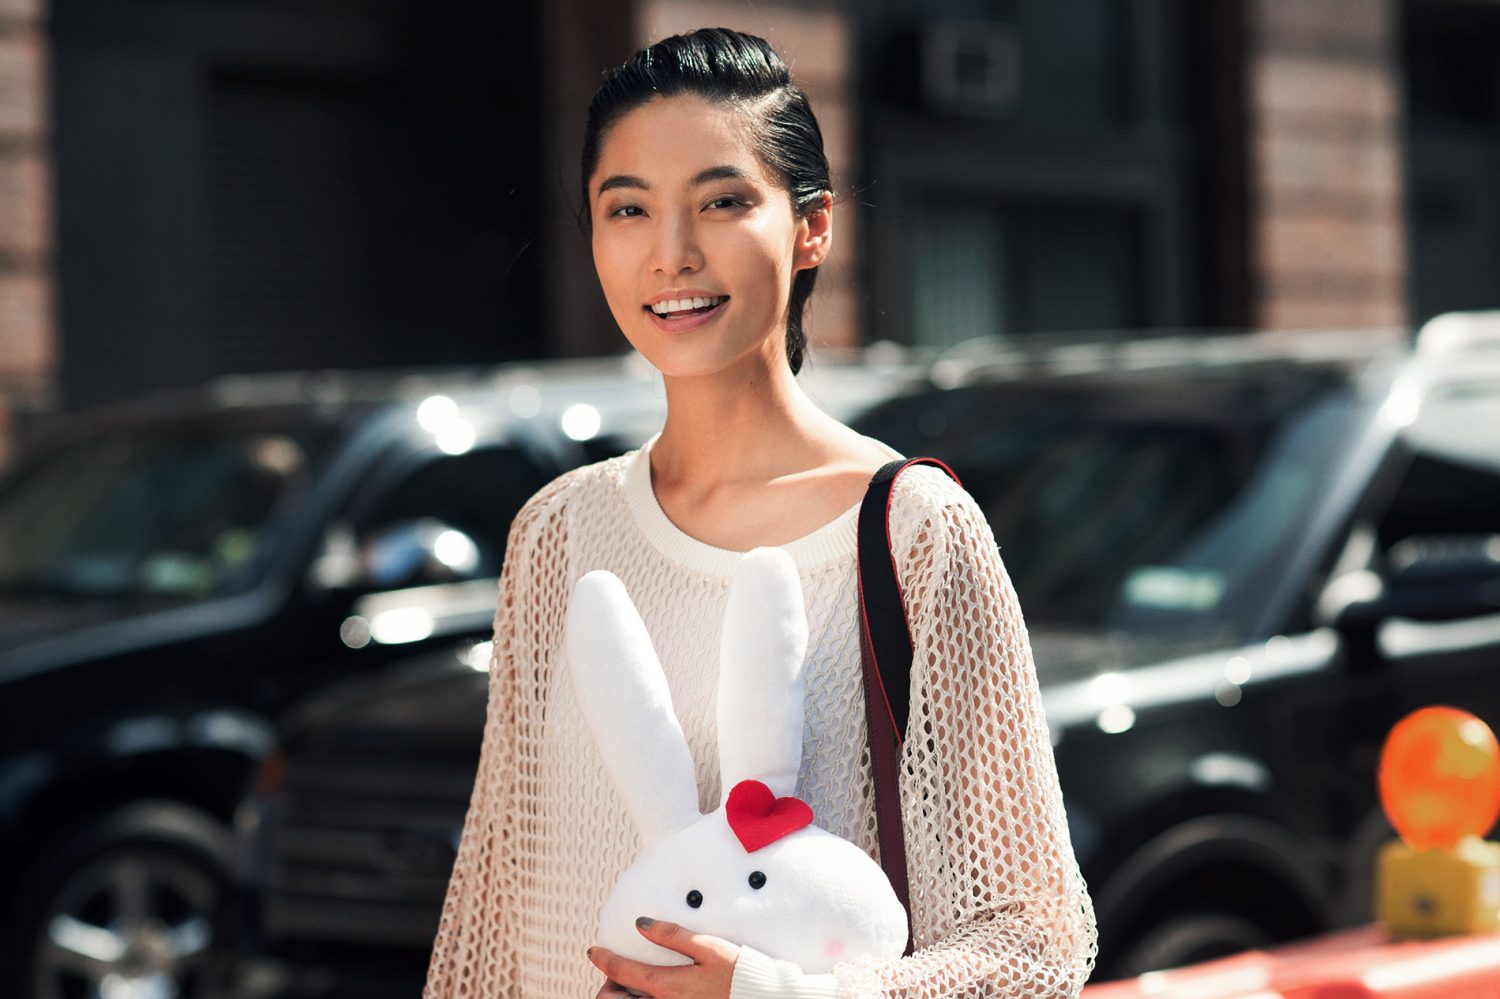 Bonnie Chen at New York Fashion Week Spring/Summer 2015